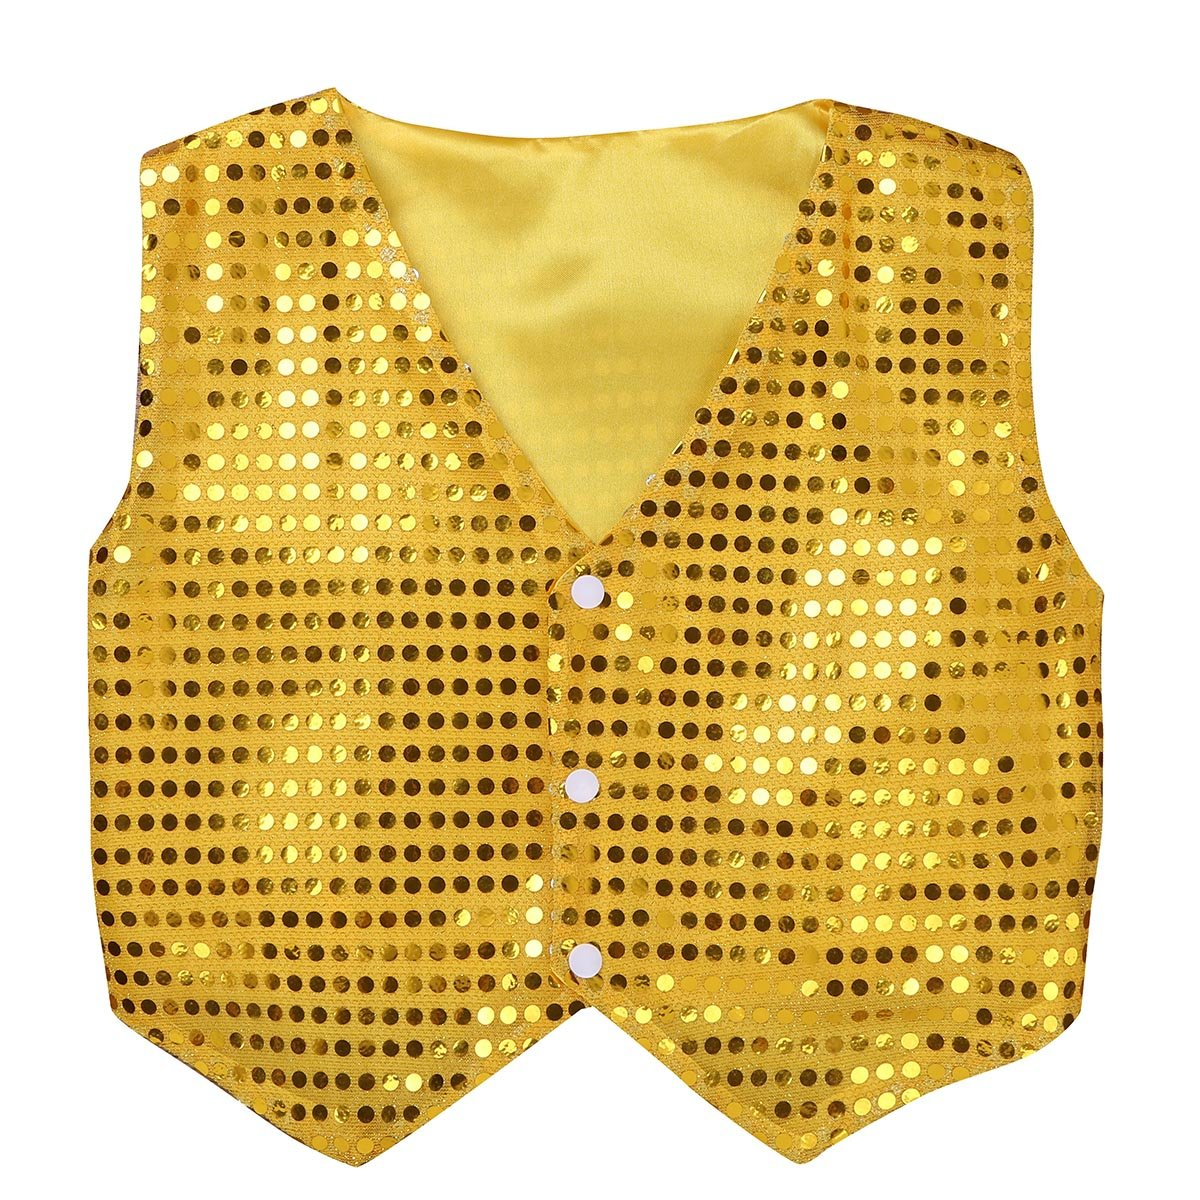 MSemis Kids Boys Shiny Party Costume Vests Sequins Waistcoat for Hip-hop Jazz Dance Stage Performance Gold 7-8